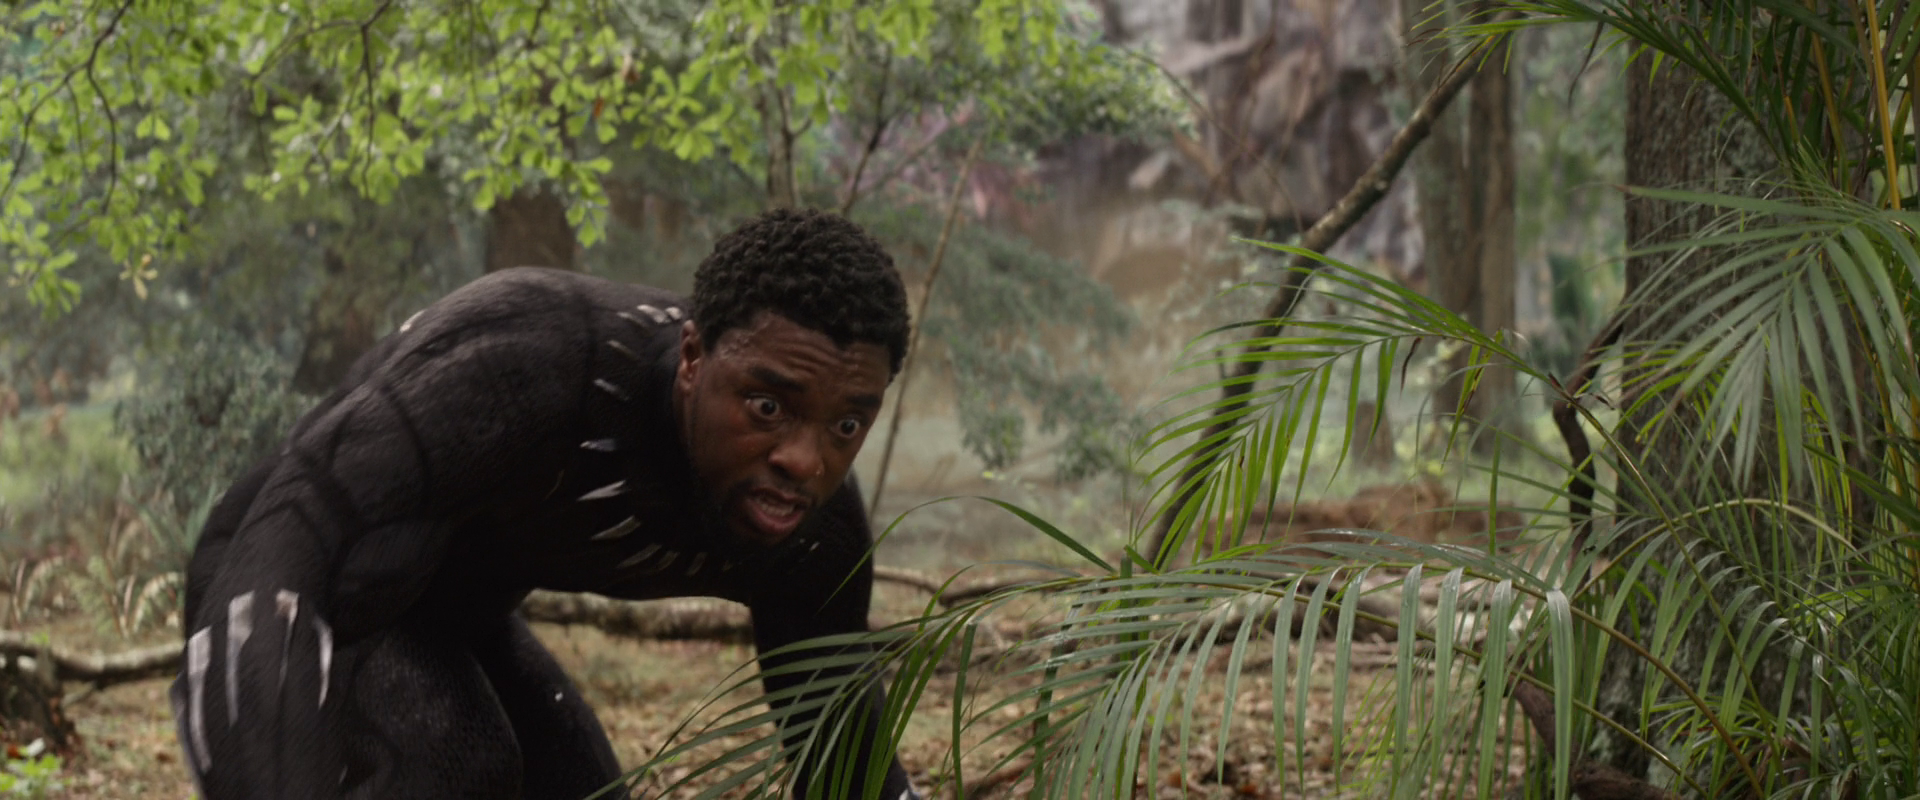 Black Panther 2': Sequel Confirmed, So T'Challa Comes Back